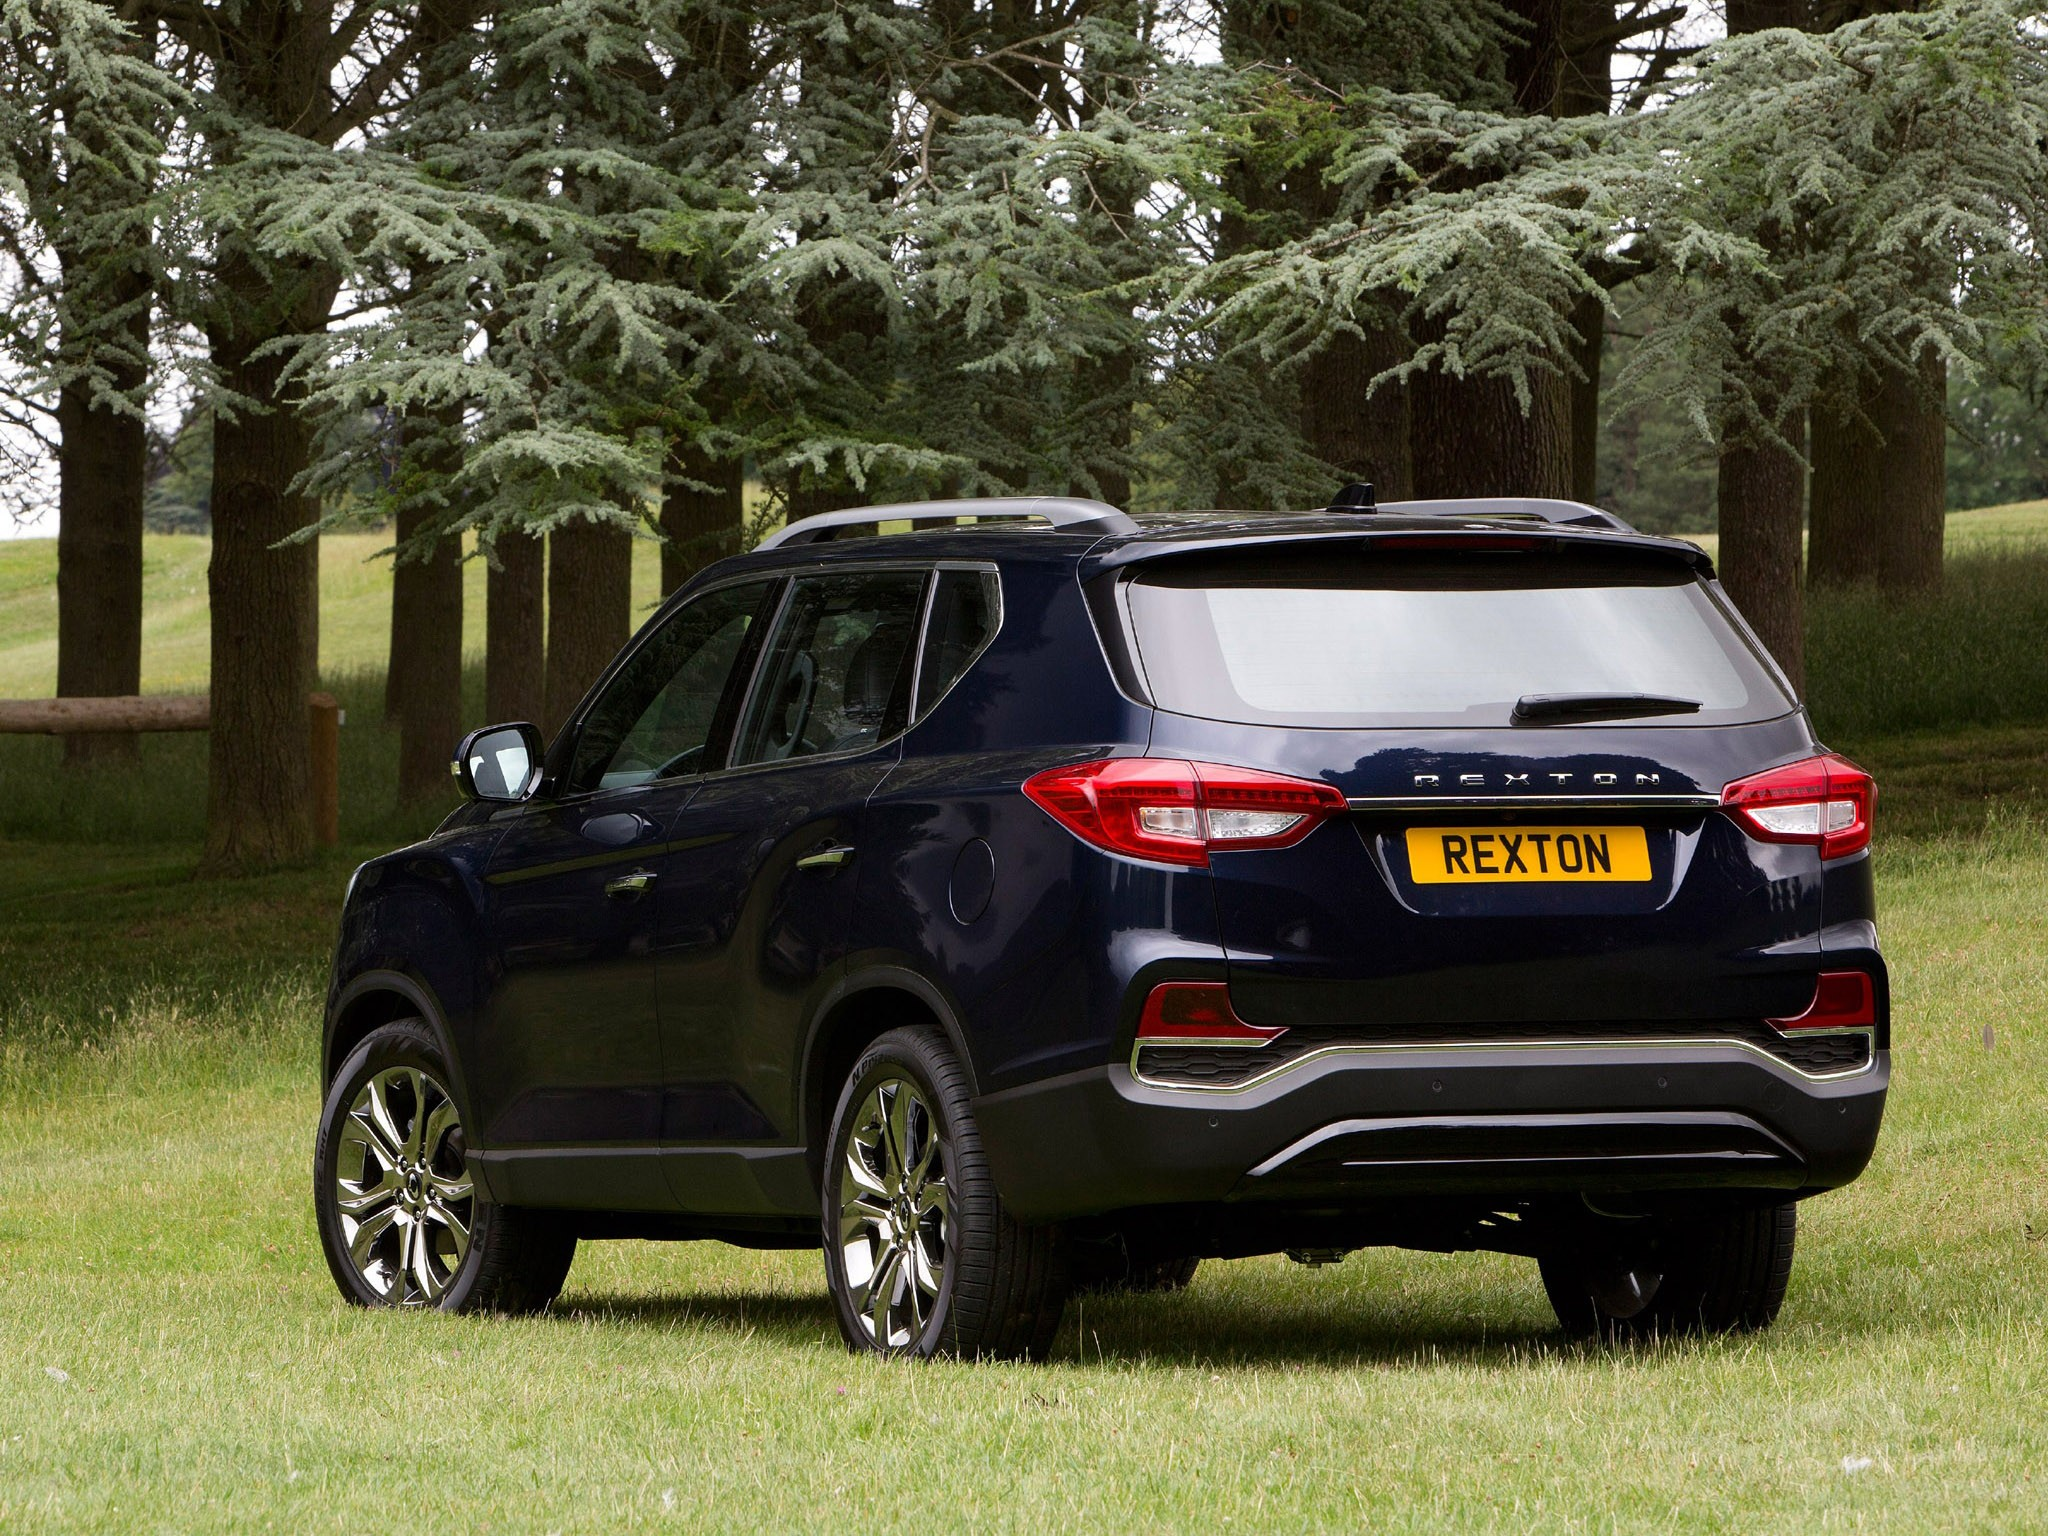 SsangYong Rexton Y400 2017